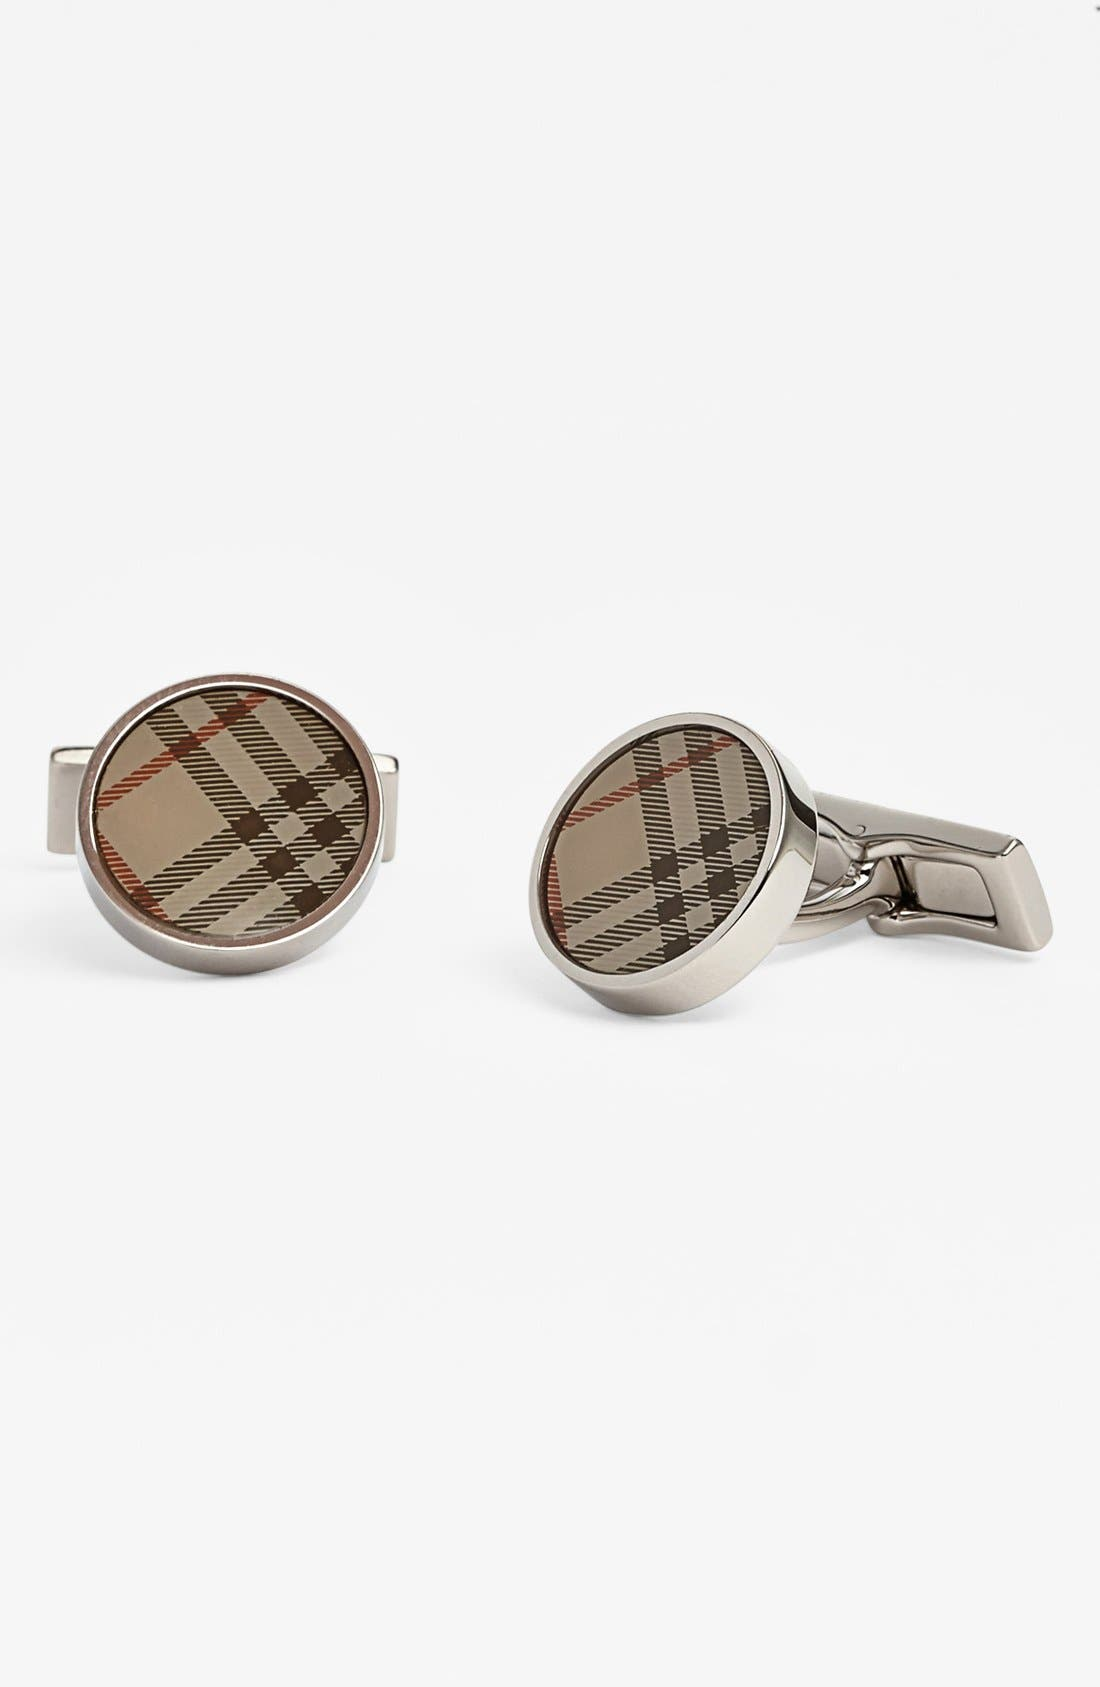 Main Image - Burberry Round Cuff Links